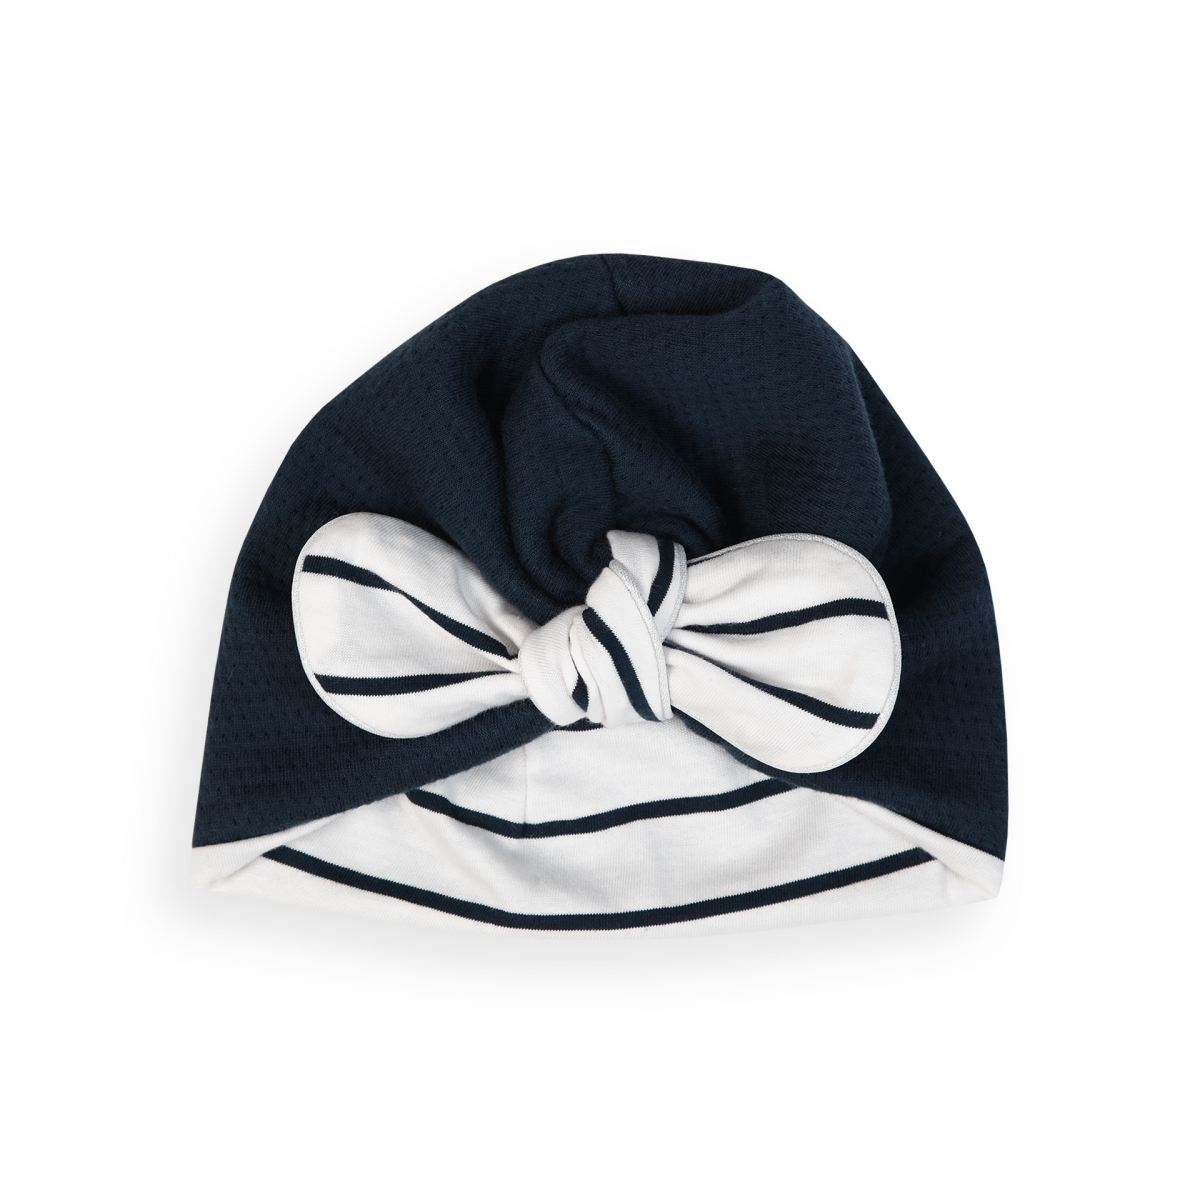 Turban with bow